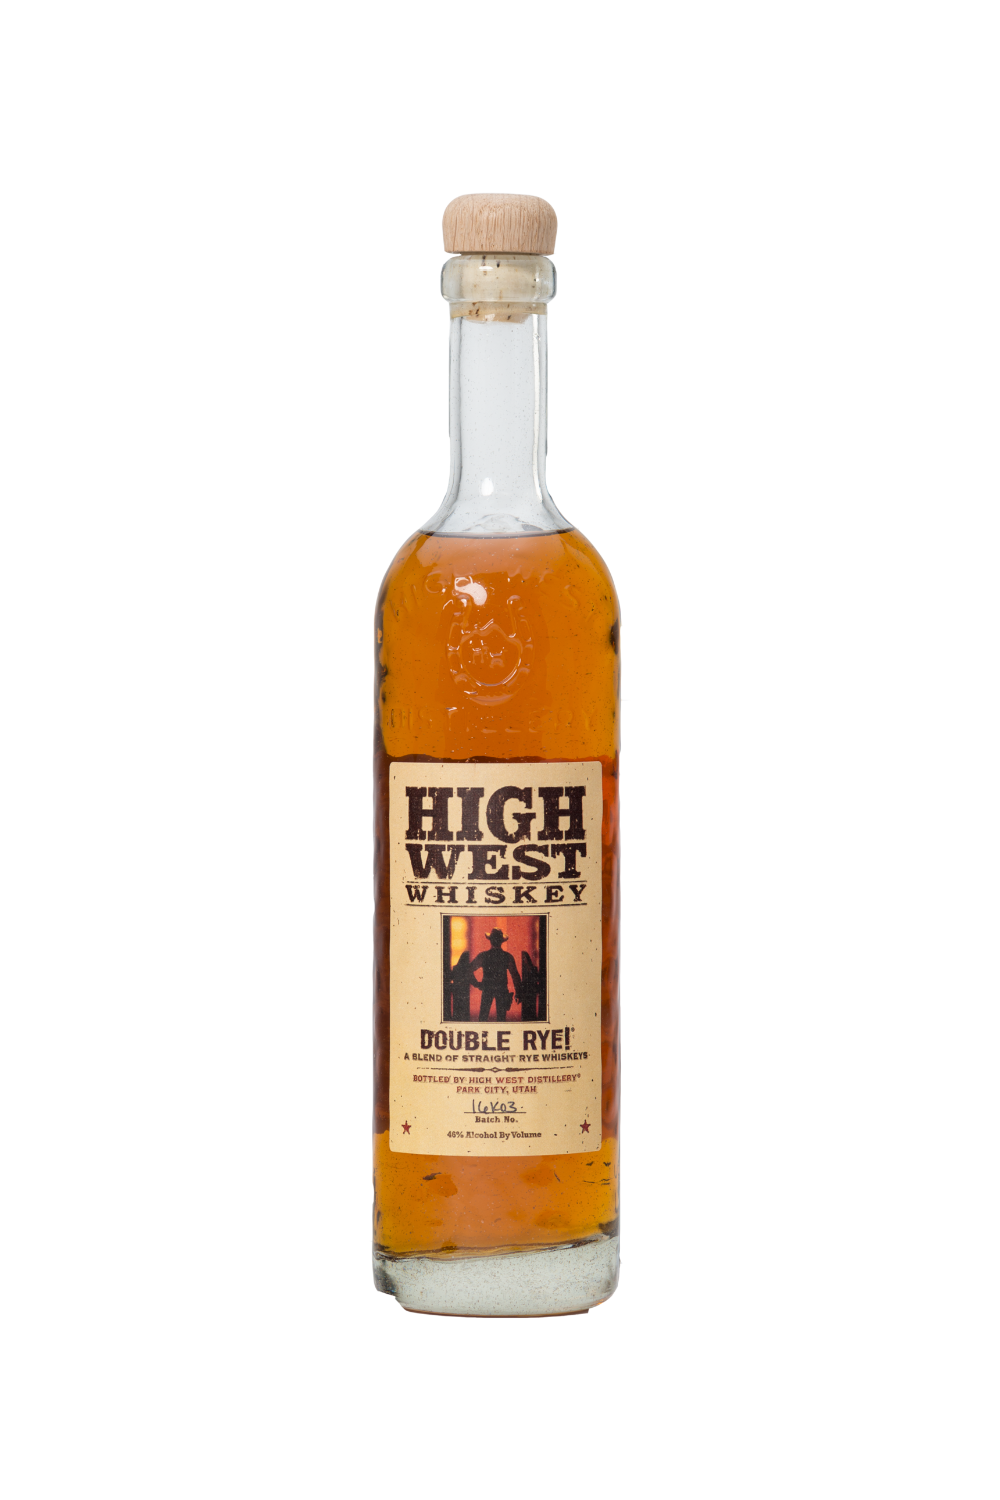 High West Double Rye Whisky